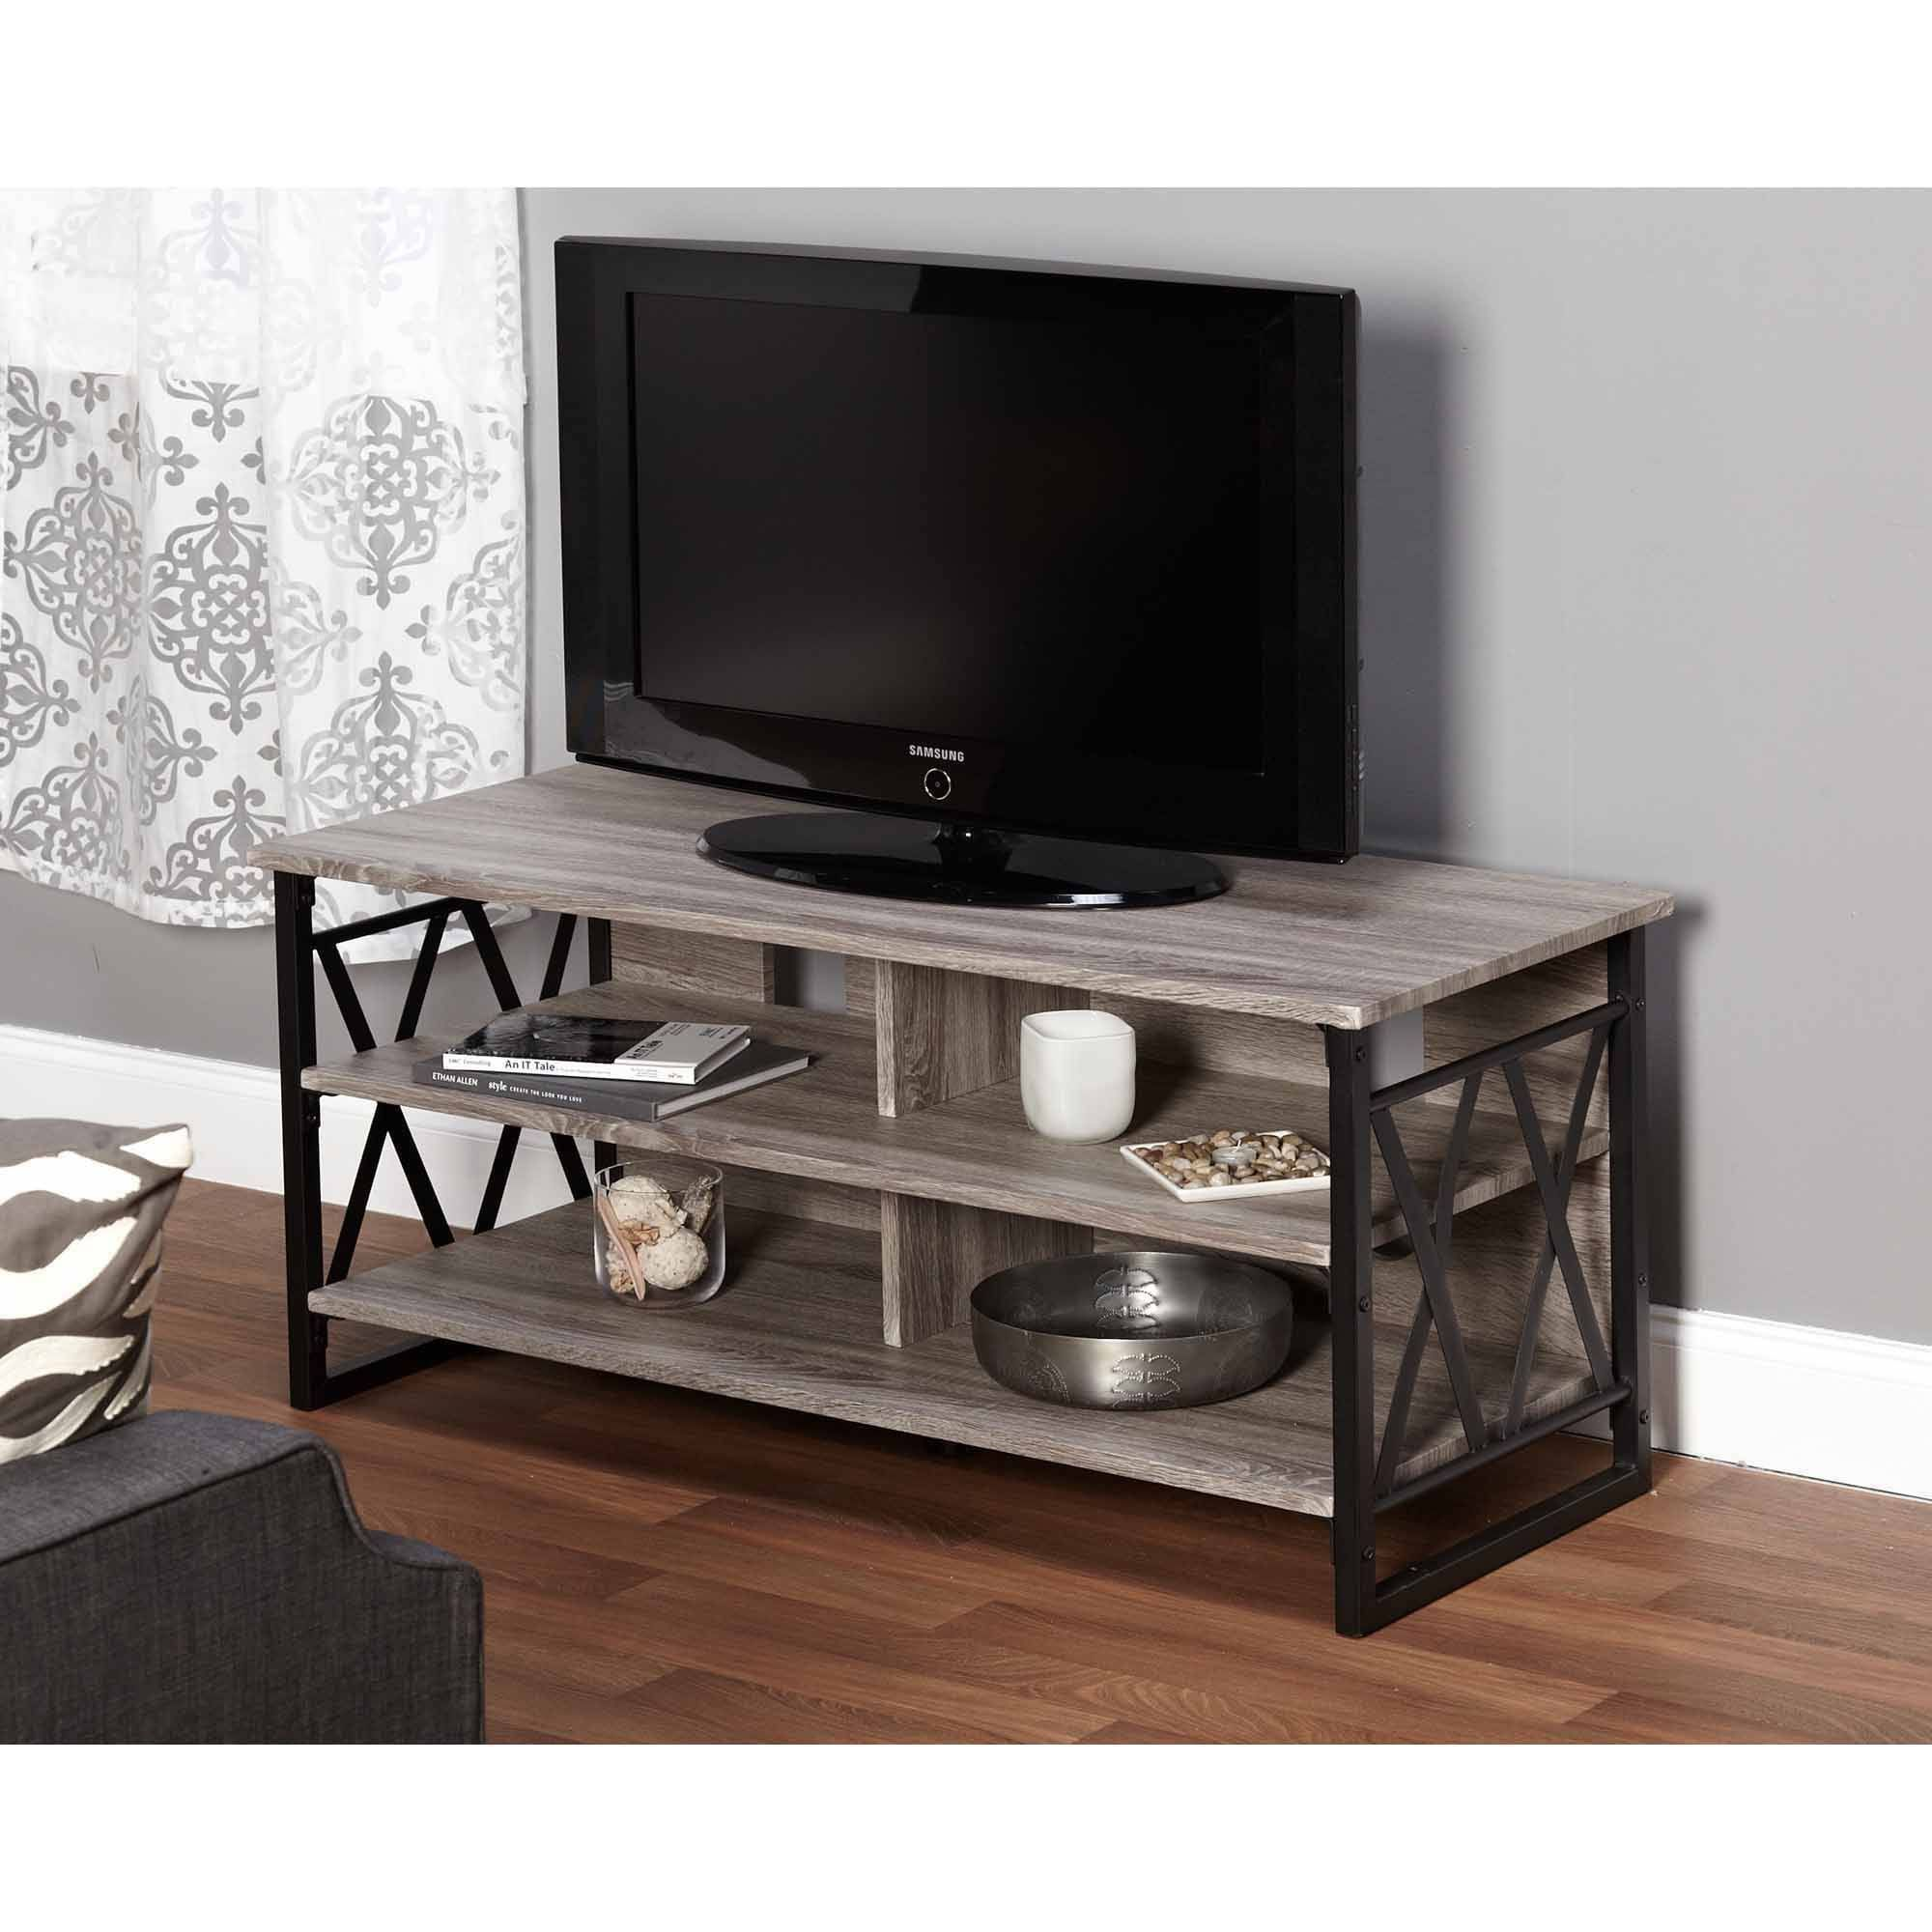 28 Amazing Diy Tv Stand Ideas That You Can Build Right Now Zebaru